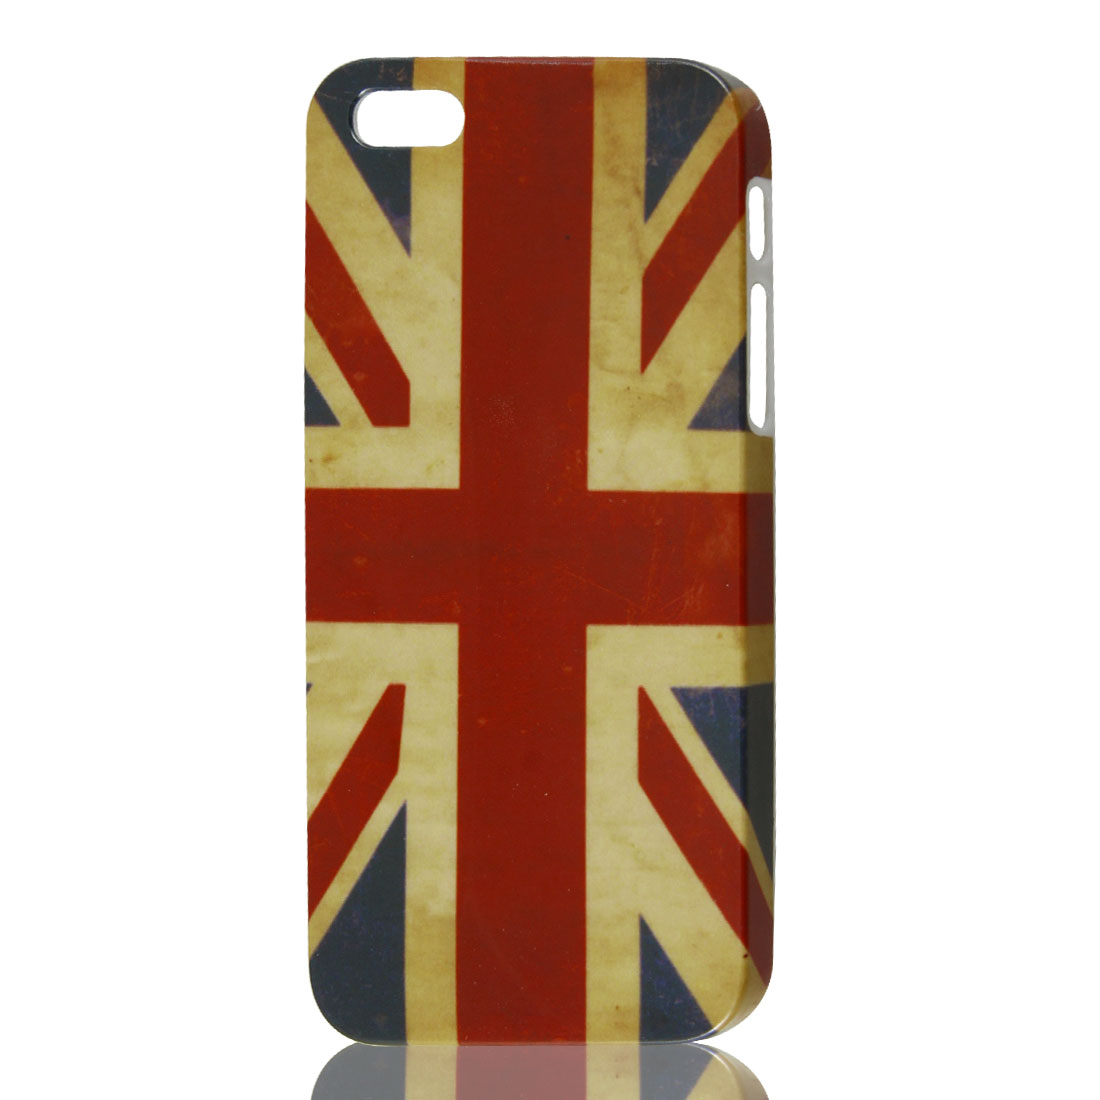 Vintage Style UK British Flag Pattern Hard Plastic Case Cover for iPhone 5 5G